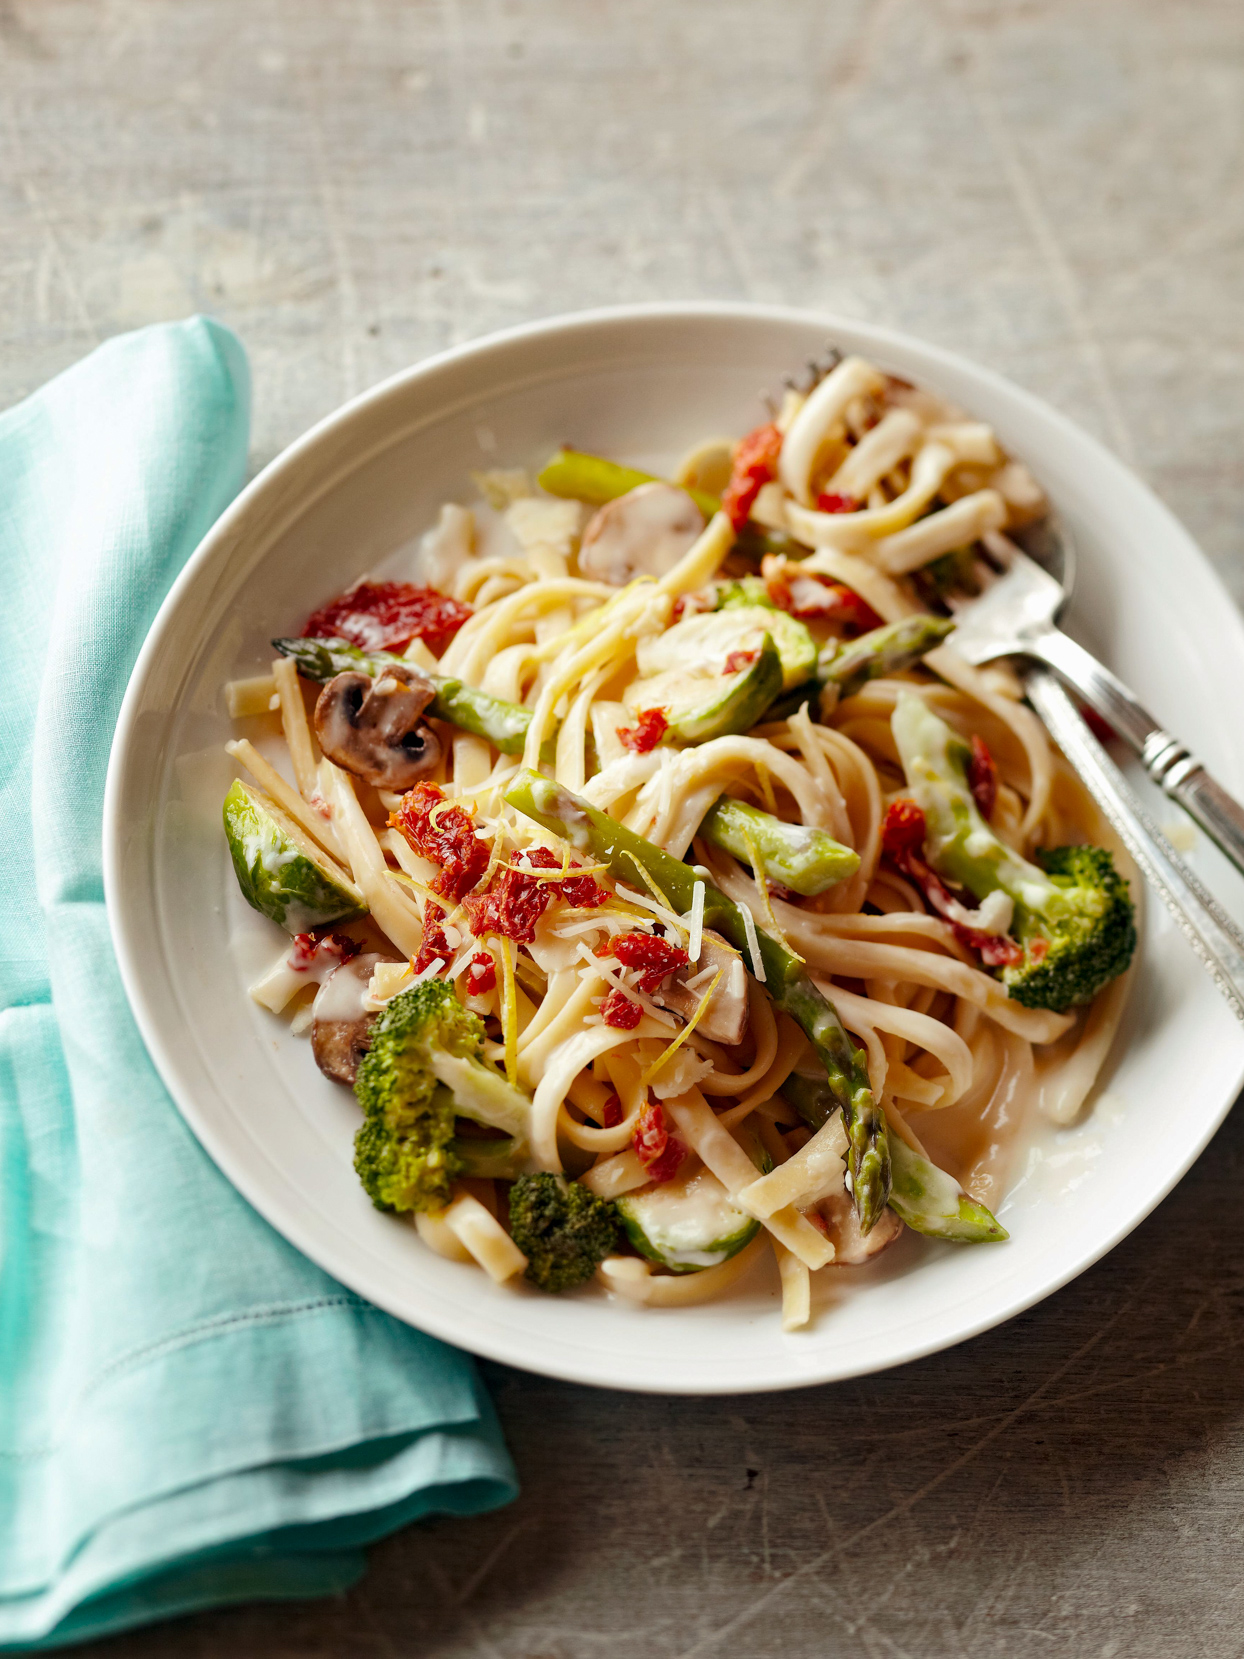 Fettuccine Alfredo with Sun-Dried Tomatoes & Veggies